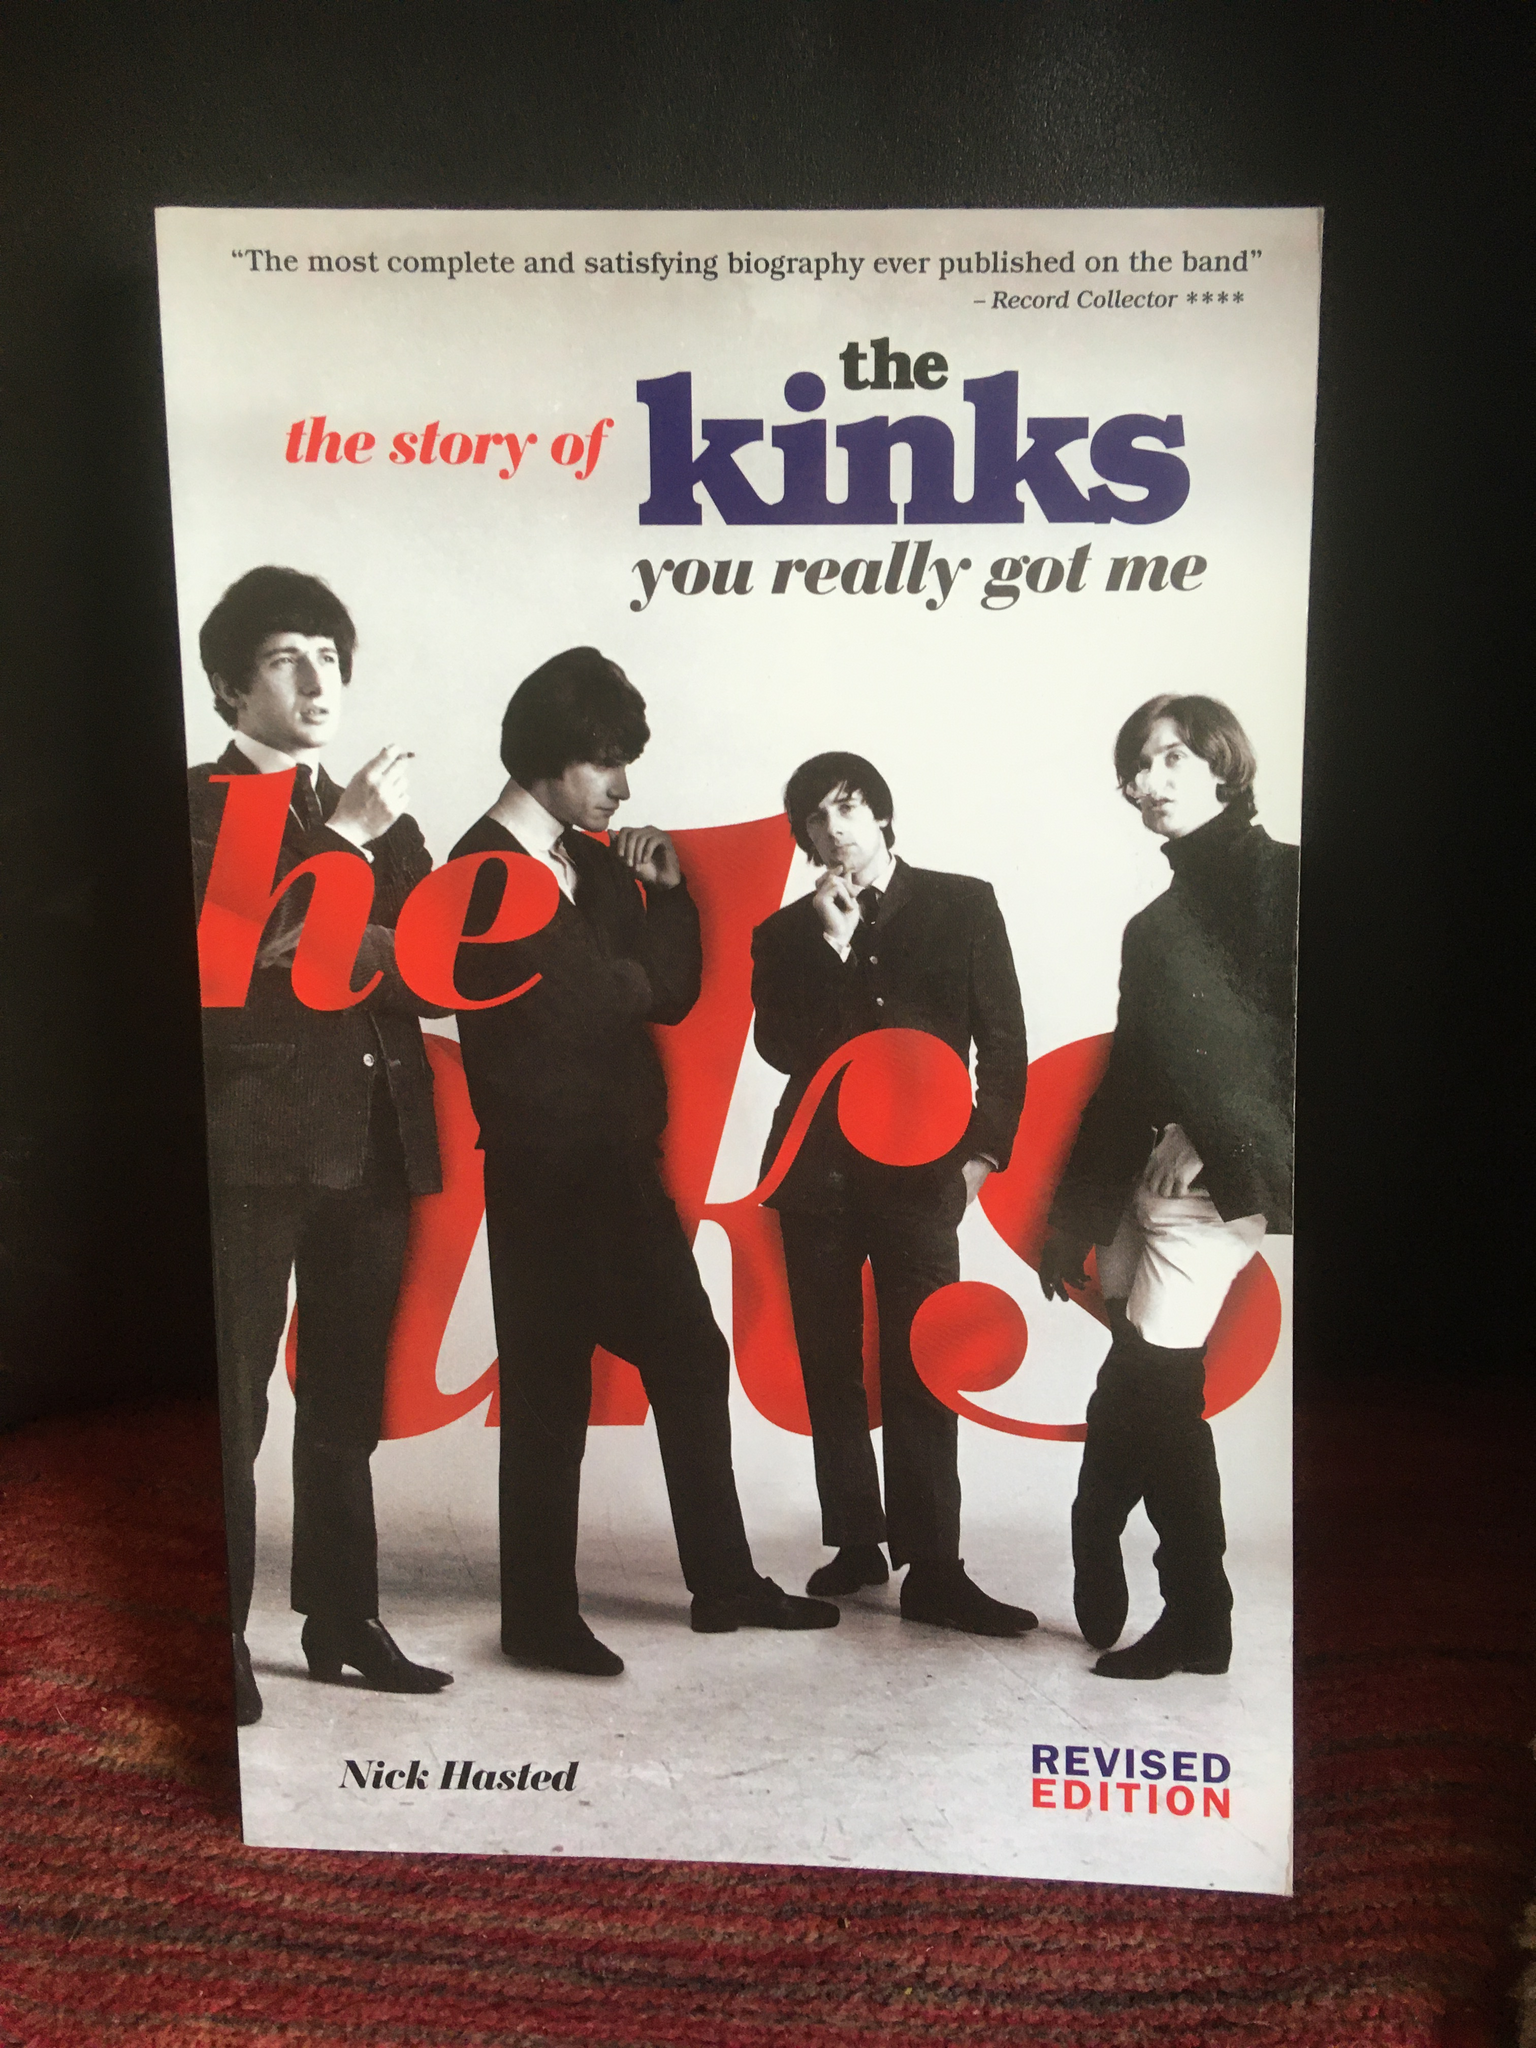 You Really Got Me: The Story of The Kinks by Nick Hasted